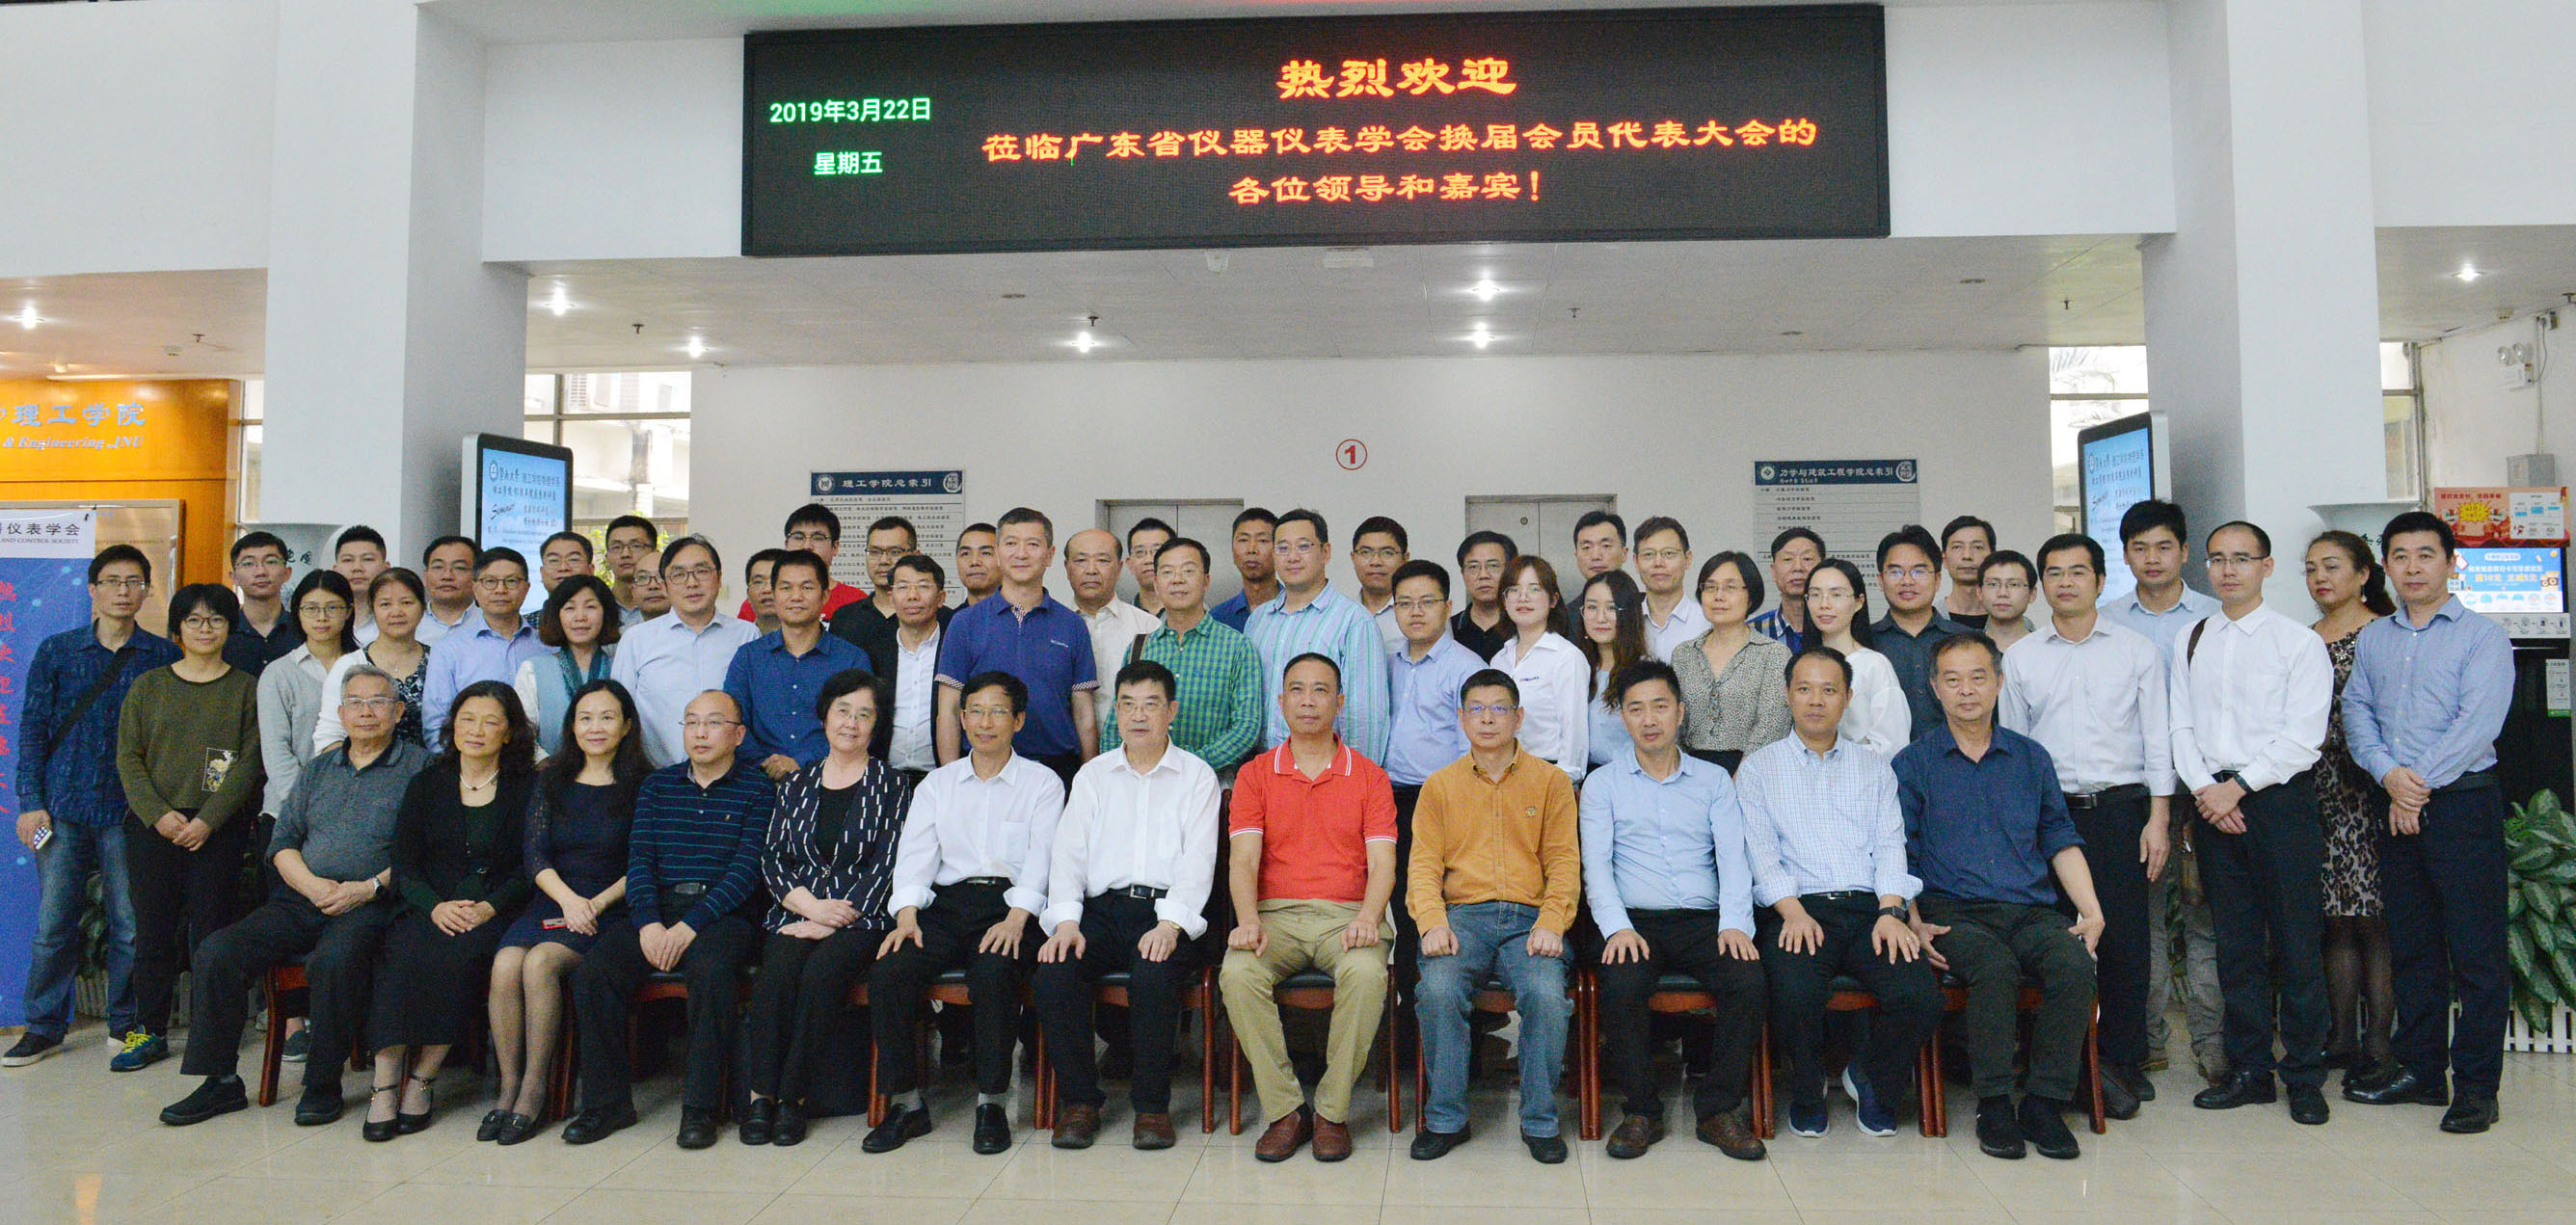 Toky Electric Co., Ltd. was elected as the vice chairman unit of the Guangdong Instrument and Instrument Association, and Chairman Zhou Songming was elected as the vice chairman!